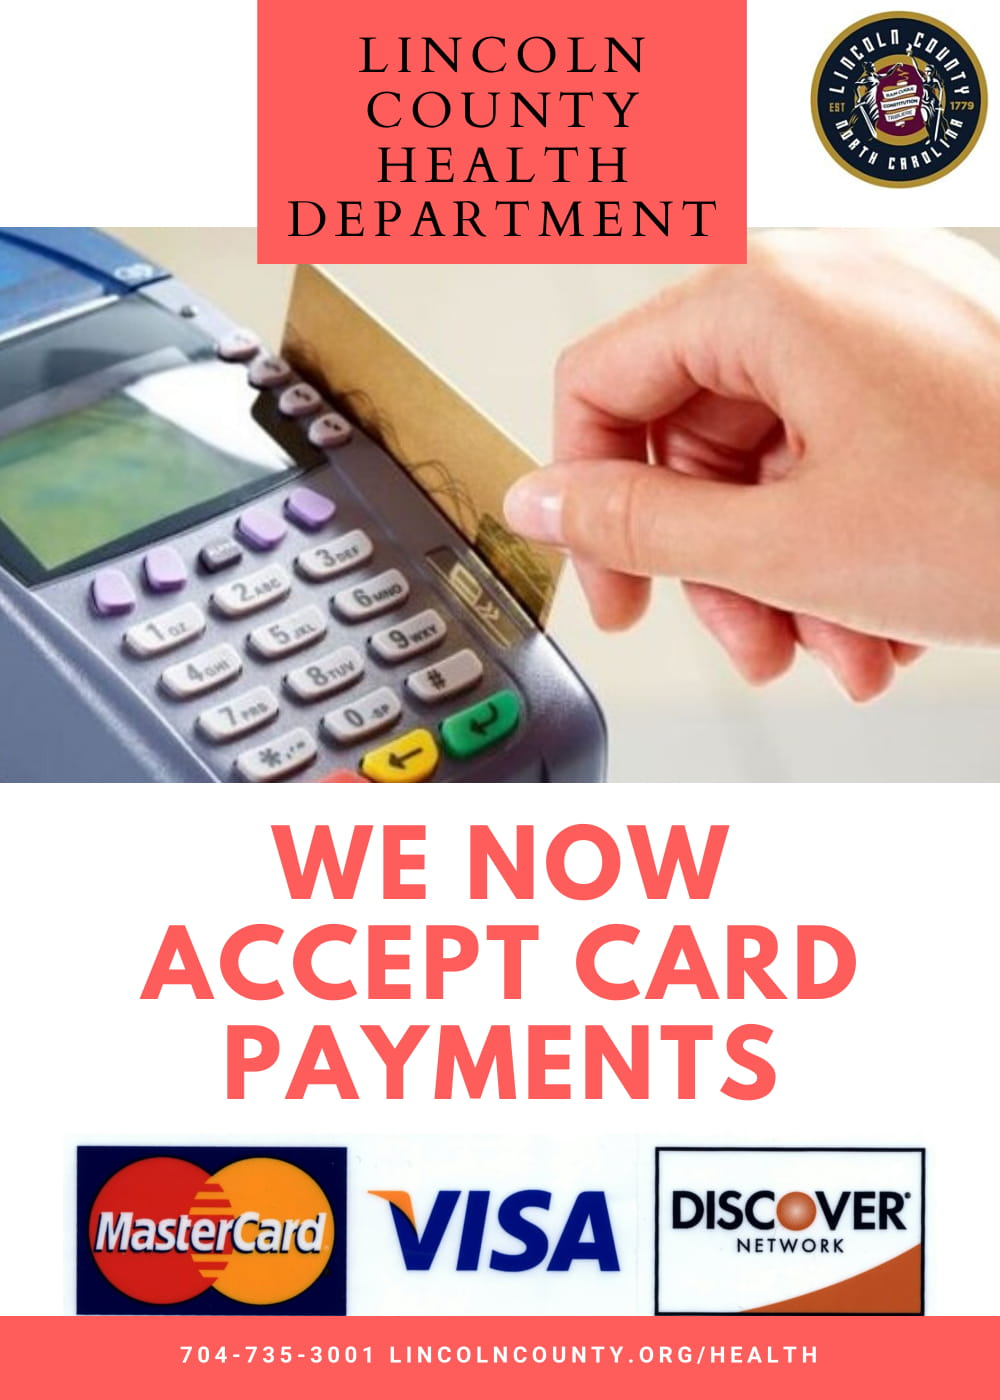 We Now Accept Card Payments-1-1.jpg